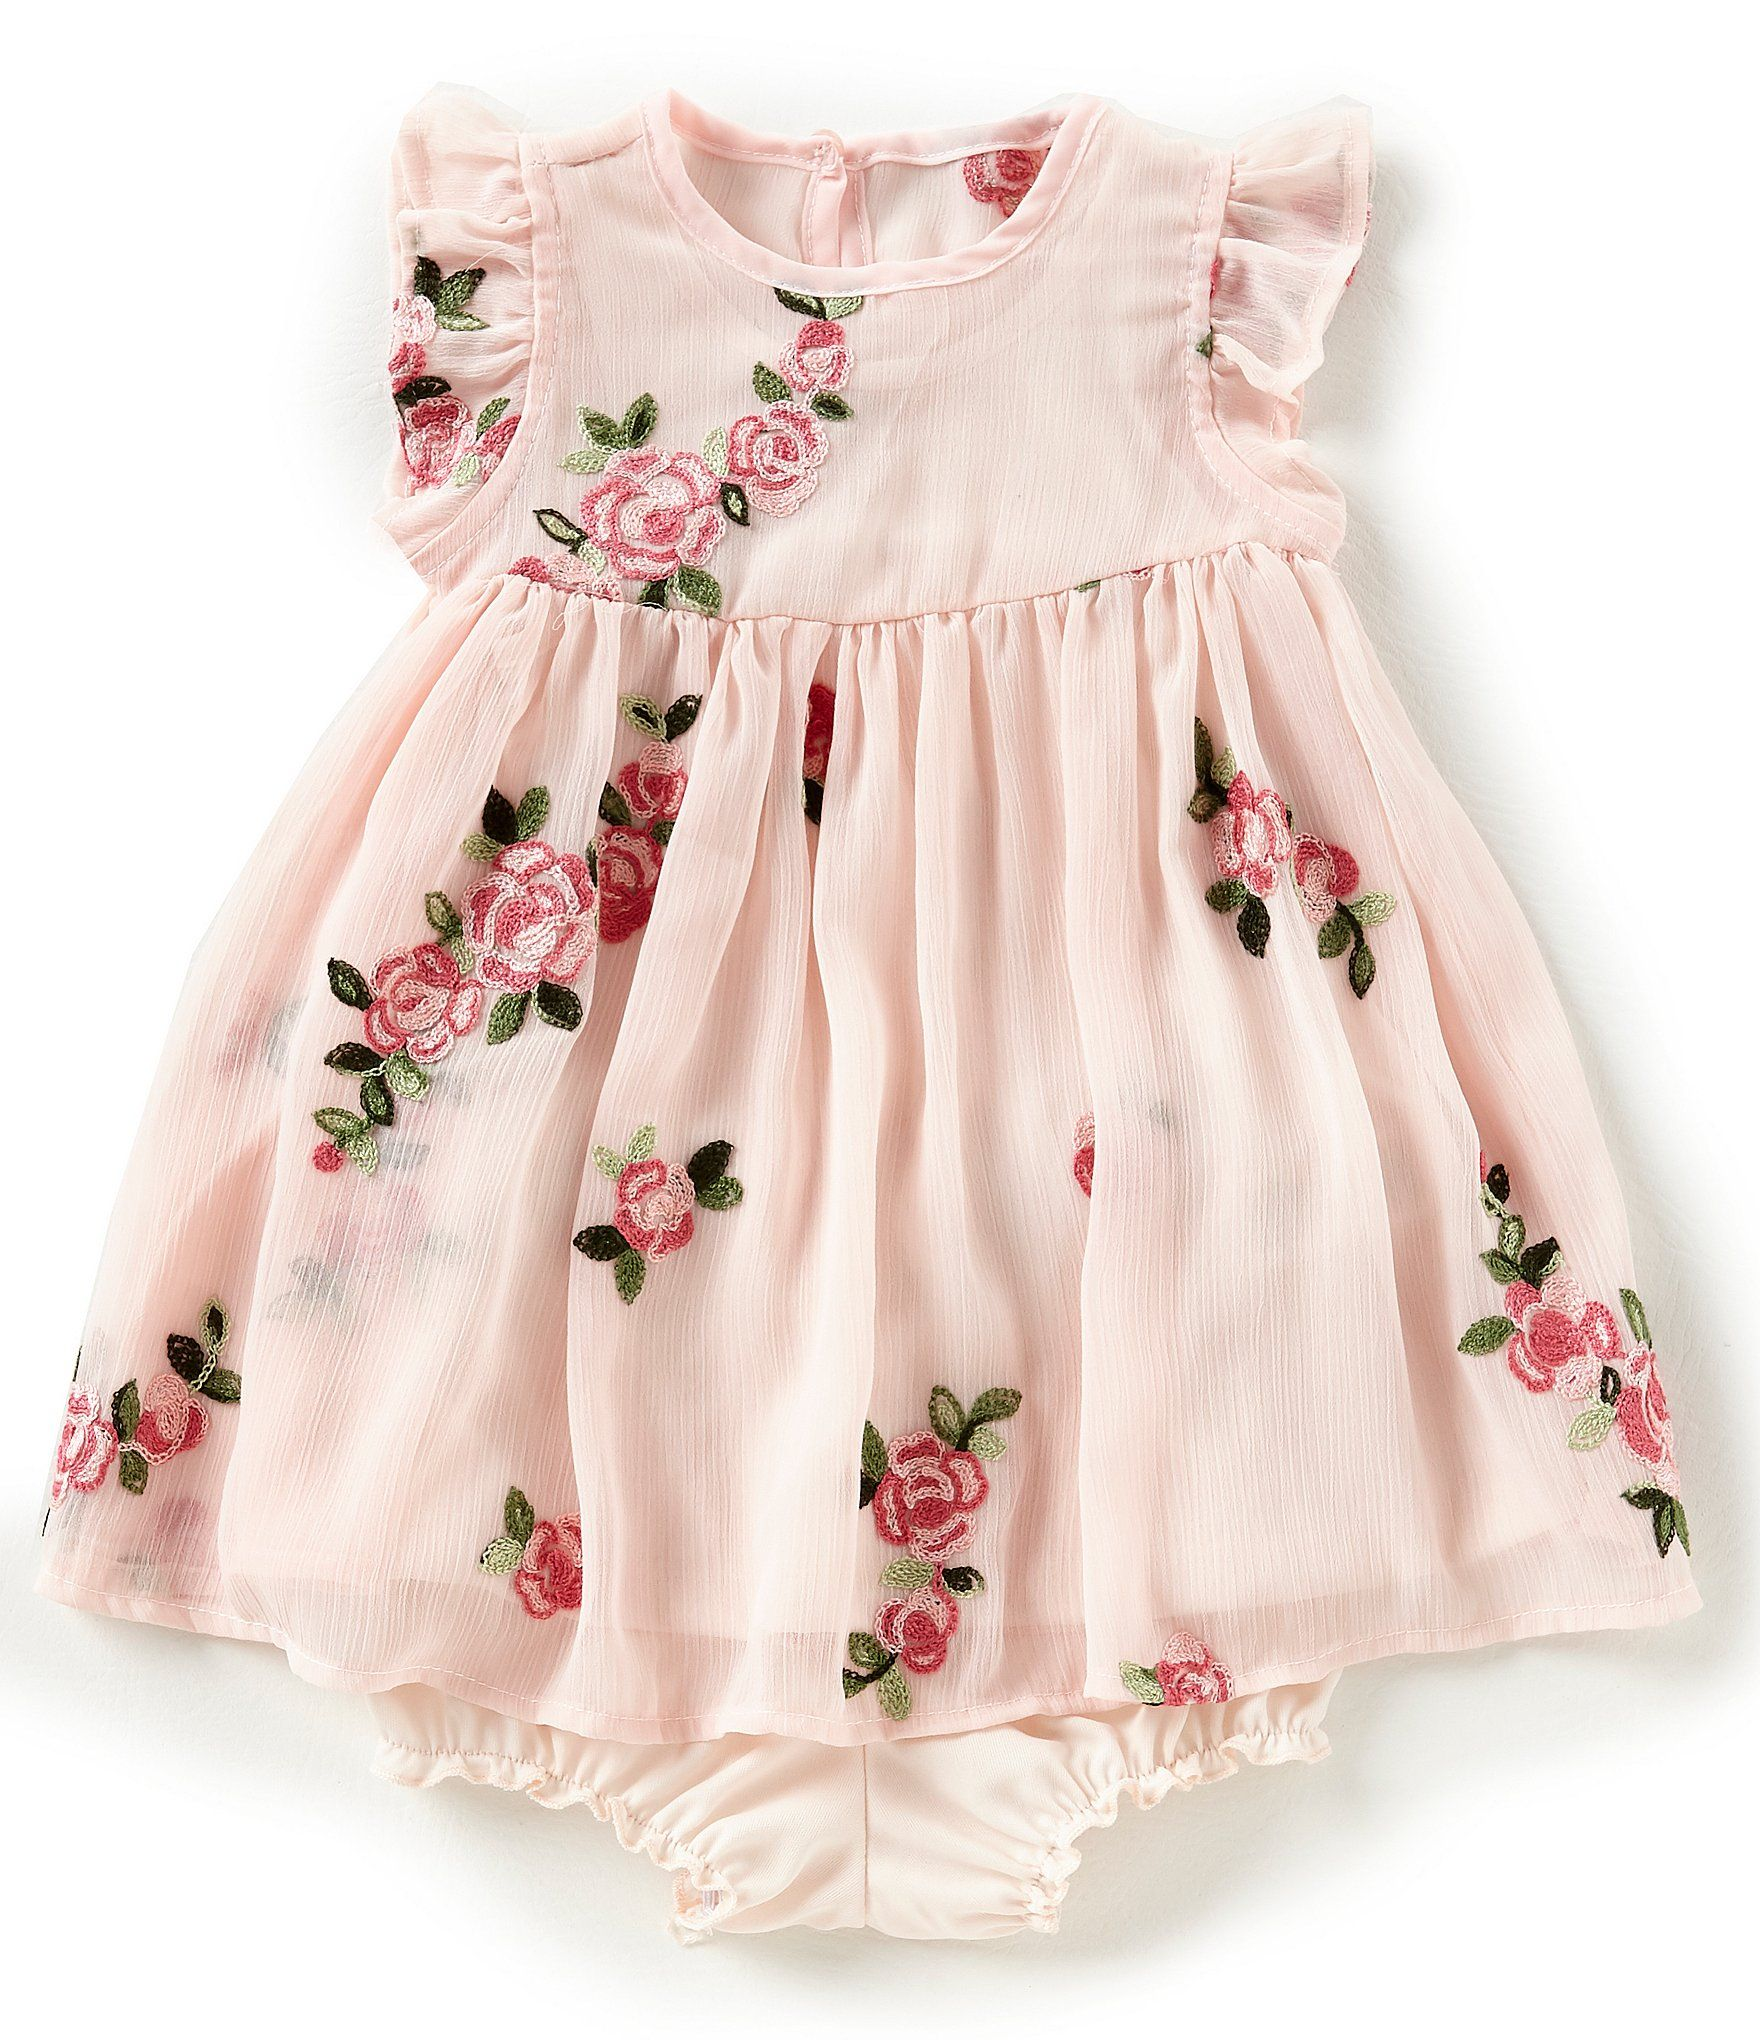 Pippa & Julie Baby Girls 12 24 Months Floral Embroidered Dress